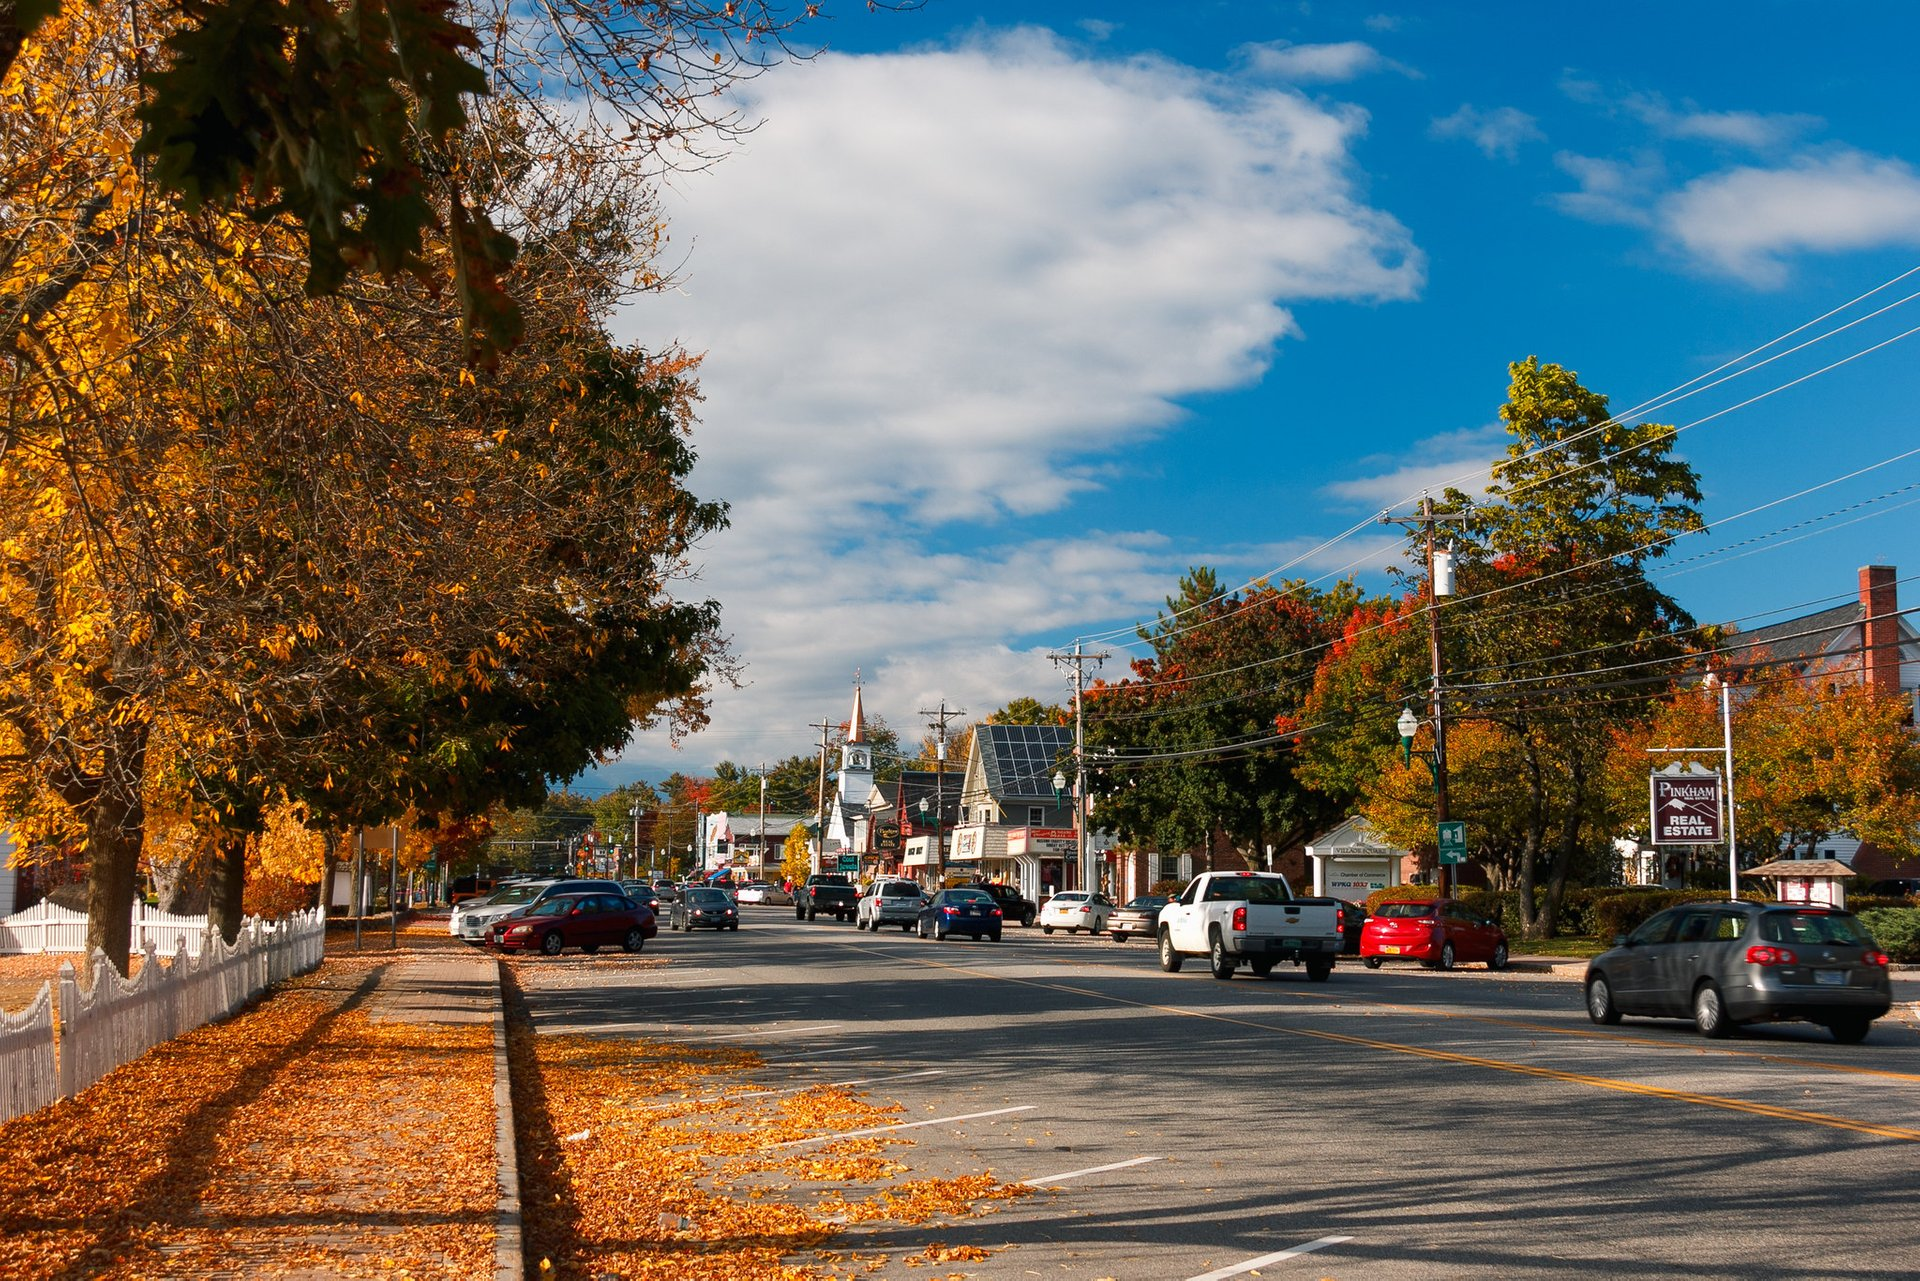 Autumn leaves in North Conway, NH 2020